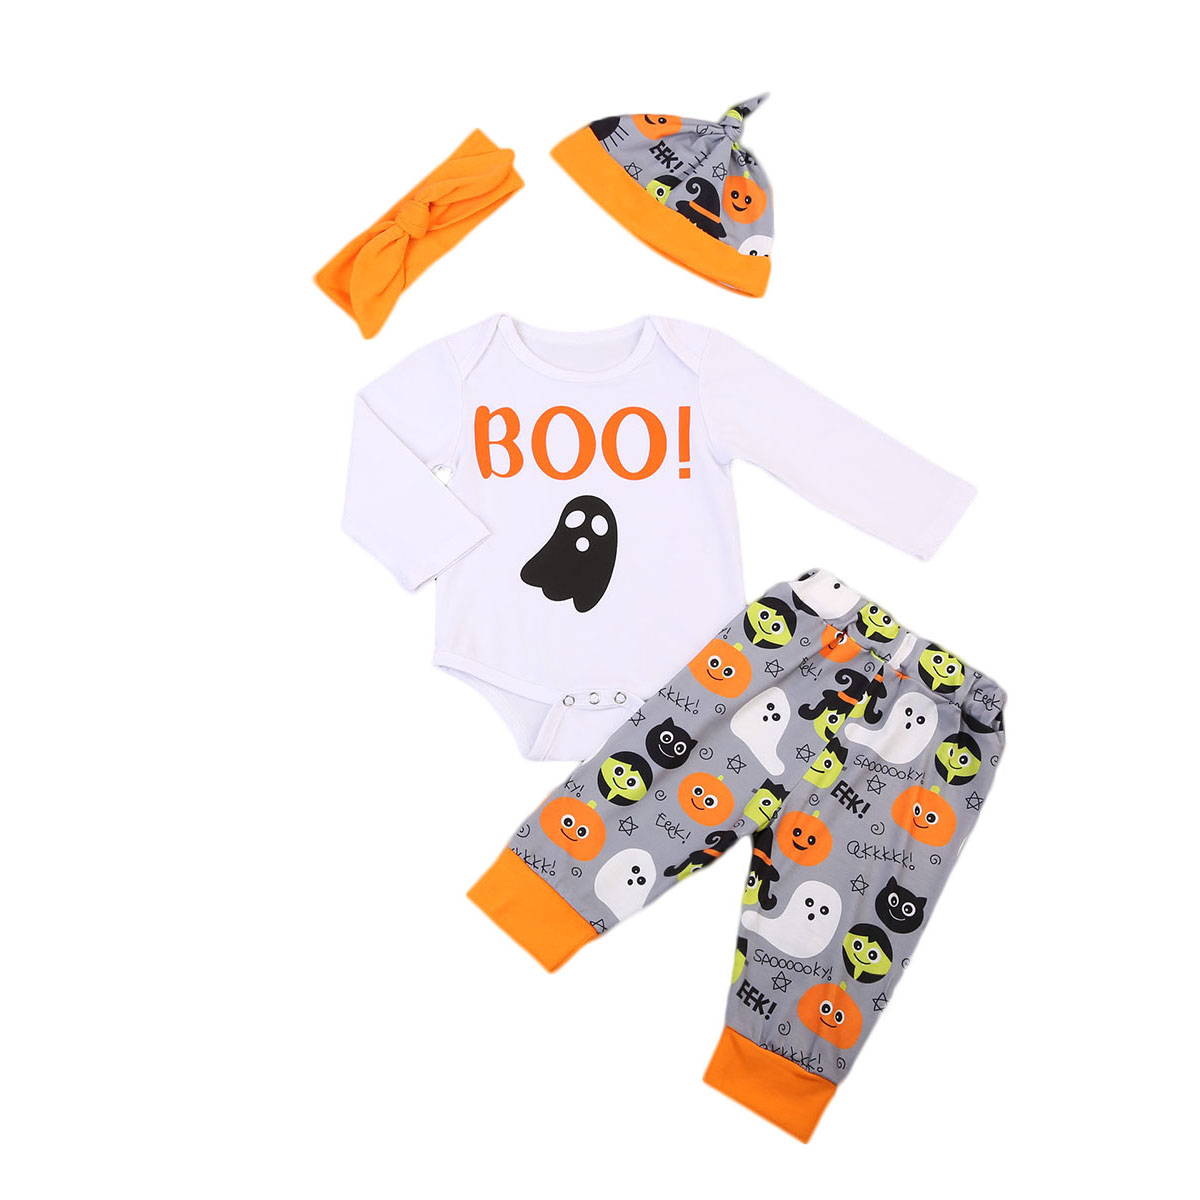 4PCS Set Infant Baby Boys Girls Romper Pants Leggings Hat Outfits 2017 New Toddler Halloween Cotton Clothes Two Piece Set